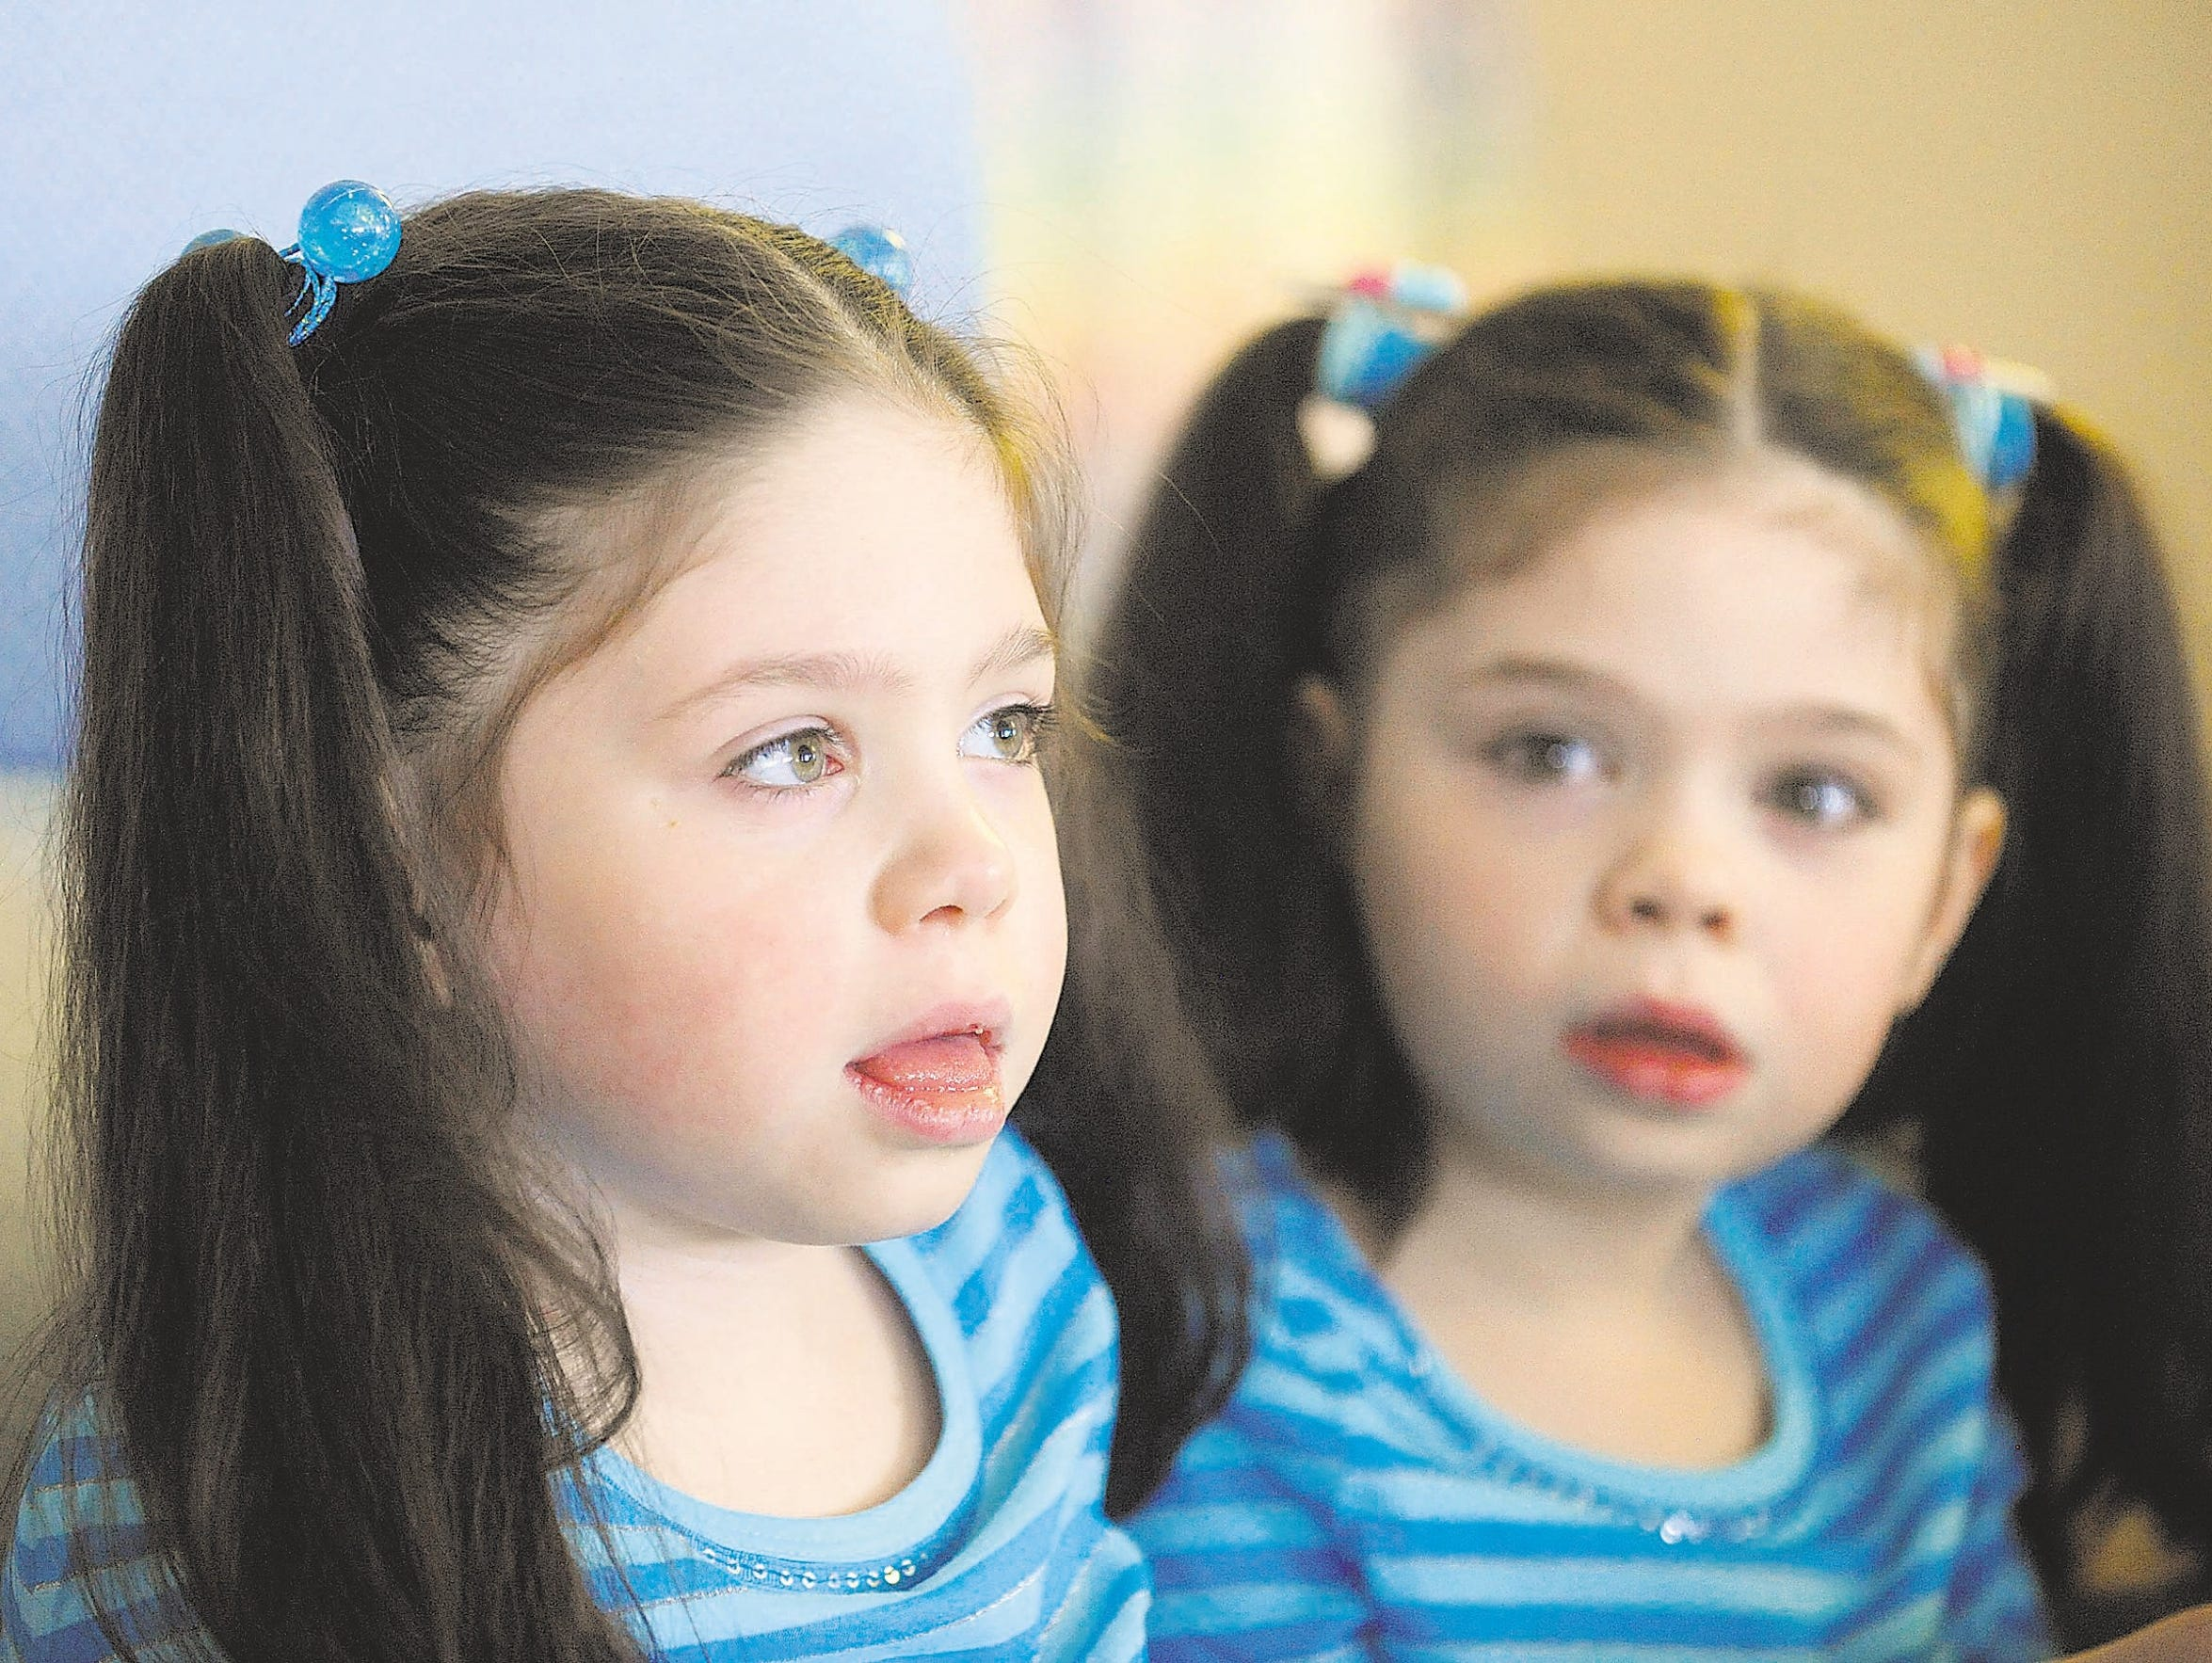 Twins Addi and Cassi Hempel, then 7, were diagnosed Neimann-Pick Type C disease.